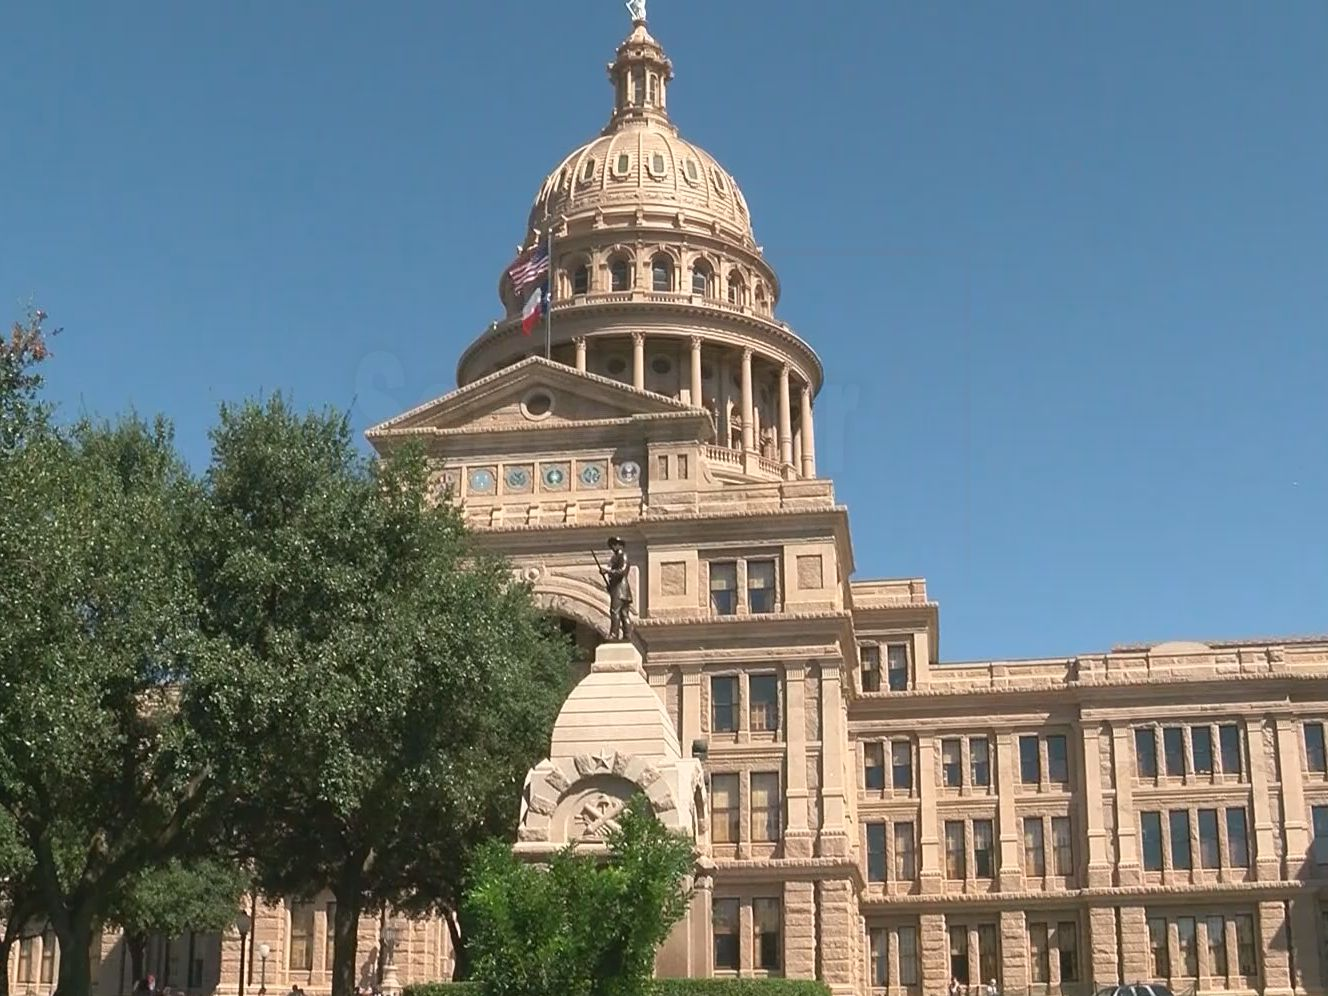 Monica's Law passed to prevent domestic violence in Texas